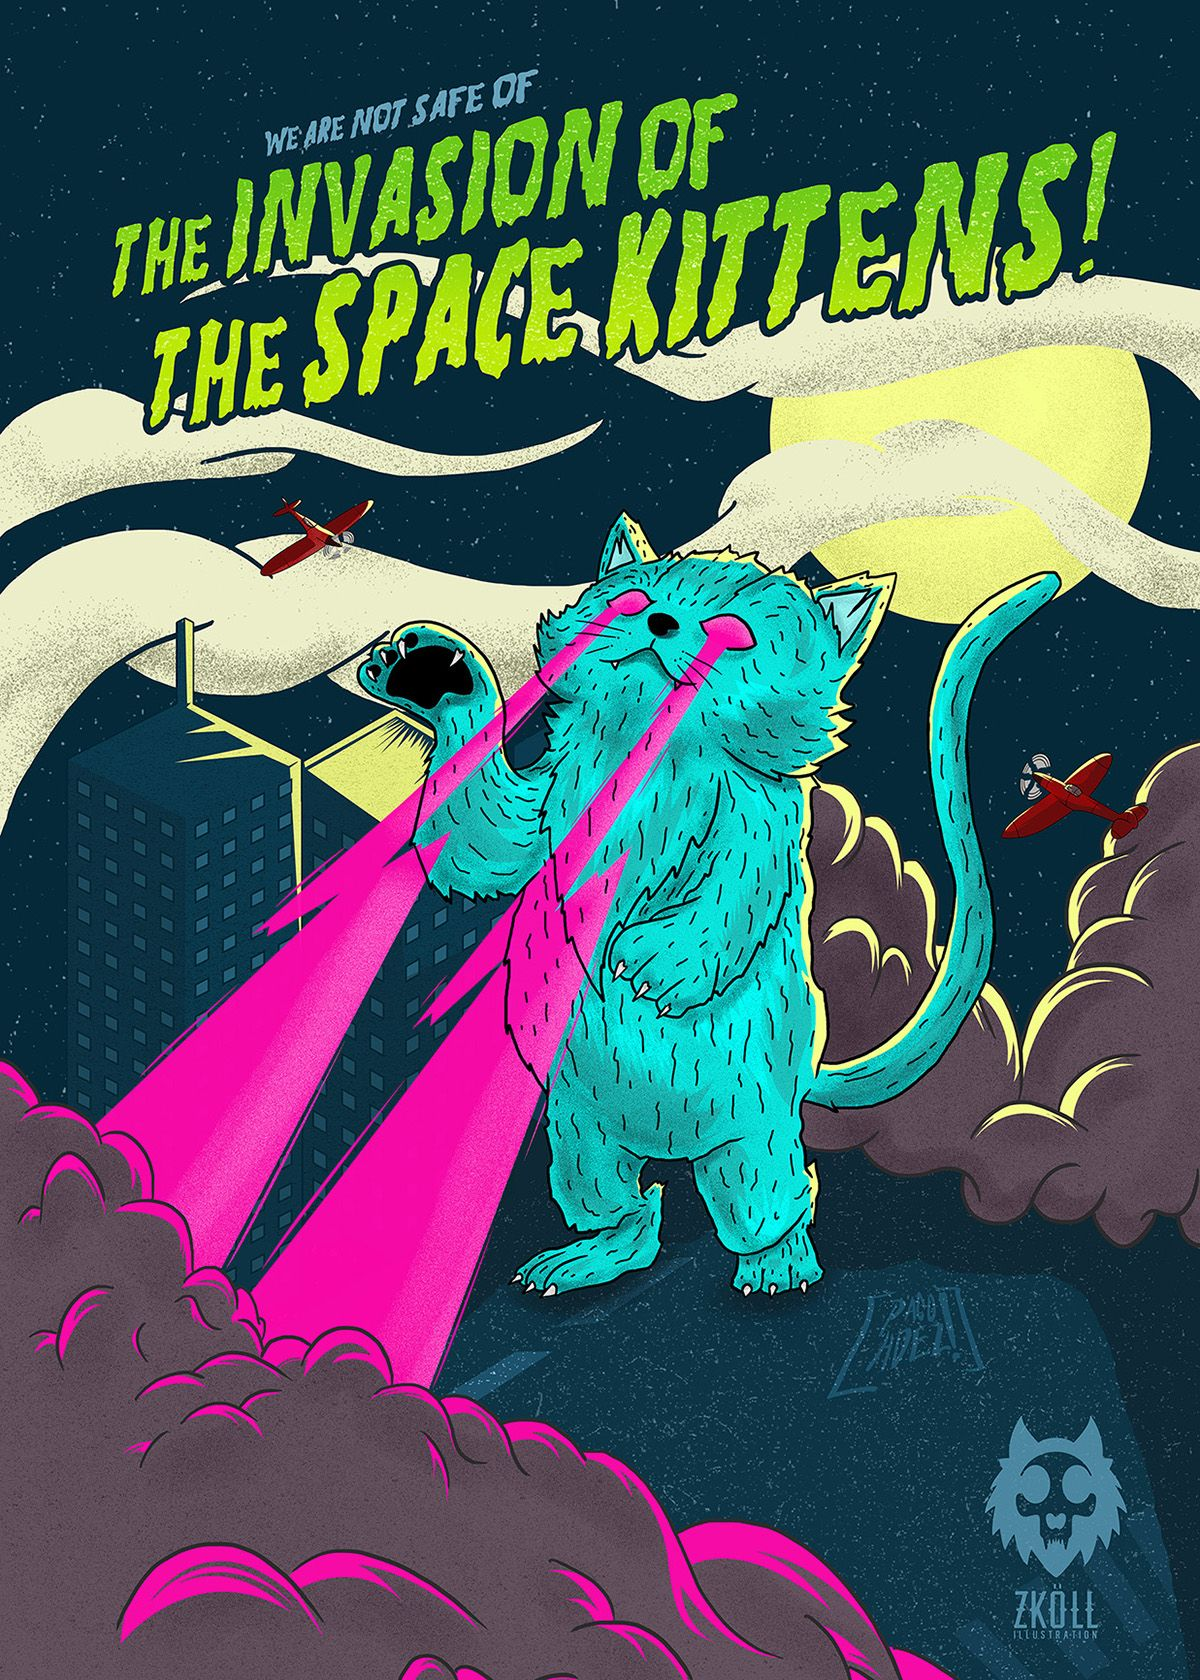 The Invasion of the Space Kittens on Behance